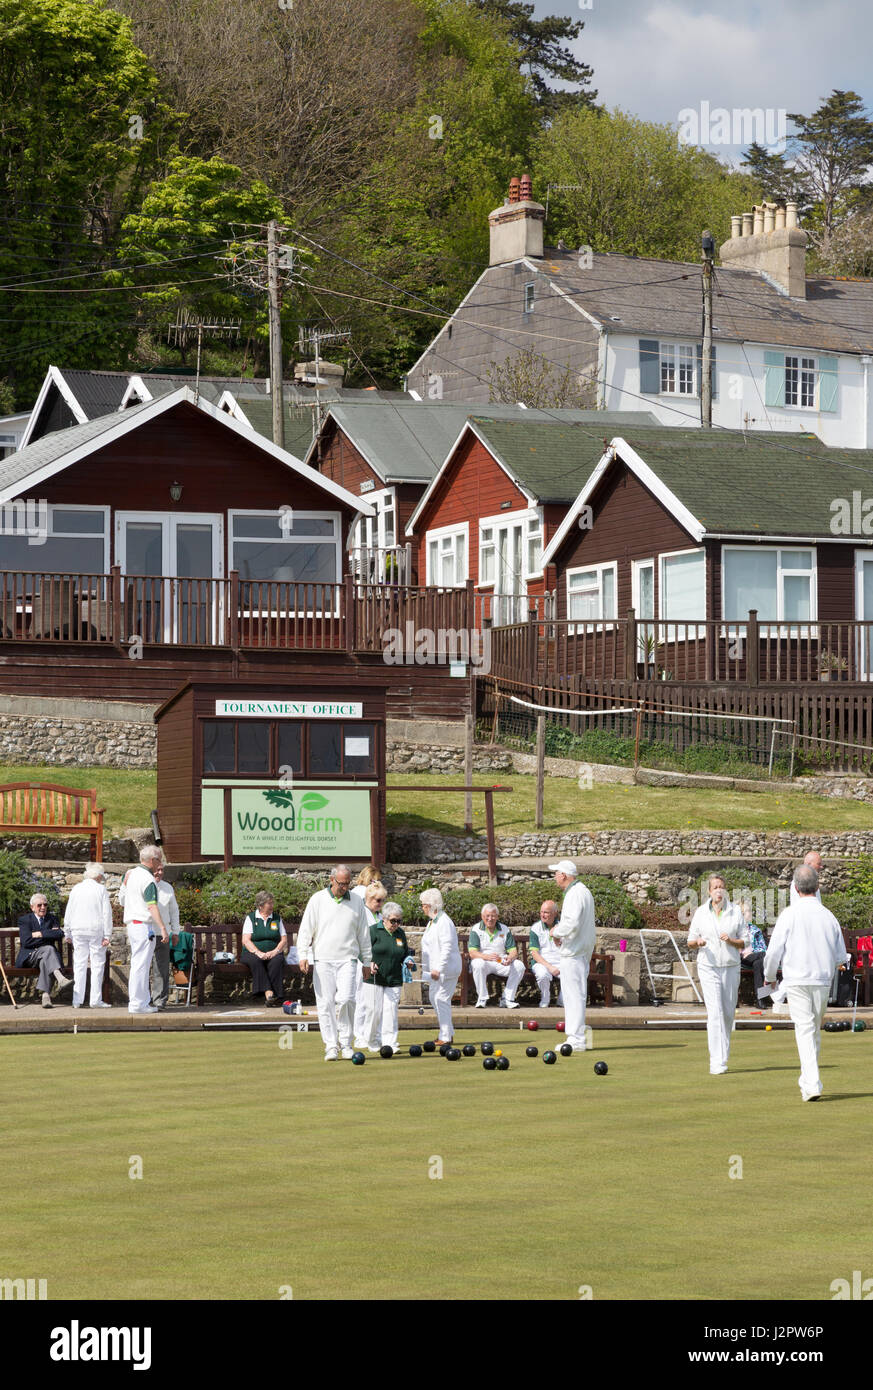 People playing lawn bowls at a lawn bowls club, Lyme Regis, Dorset England UK - Stock Image